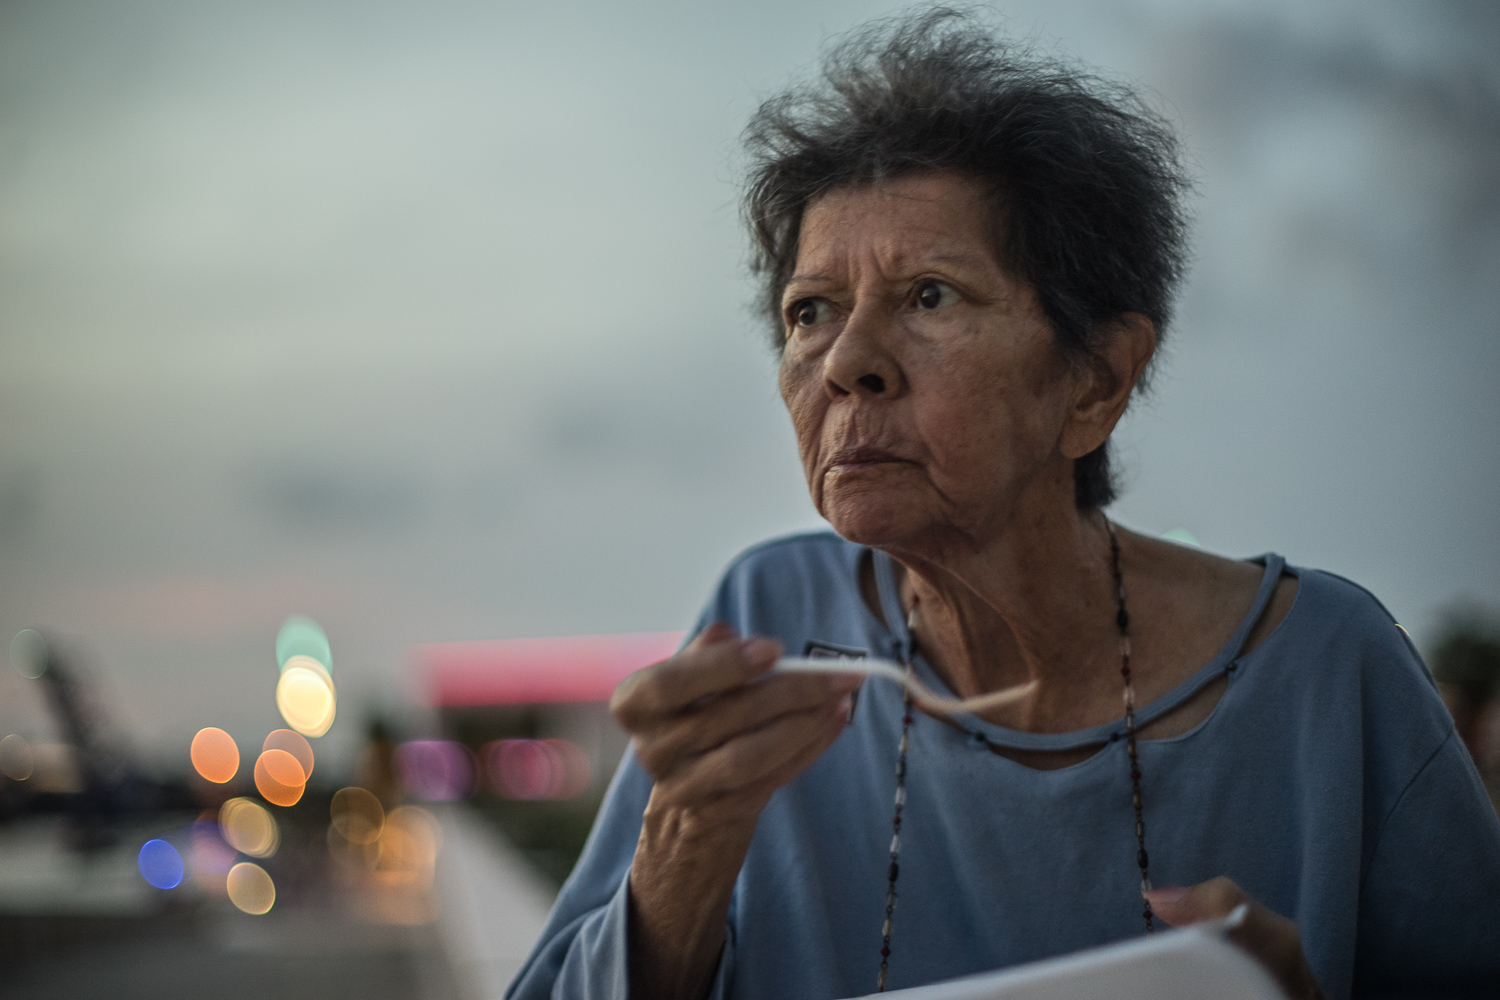 Cristine Carreras (67) in Downtown Tampa. Debora took Cristine out of Woodbridge Rehabilitation Center. When she first entered Woodbridge,Cristine weighed 93lbs (42kgs or just over 6 stone).